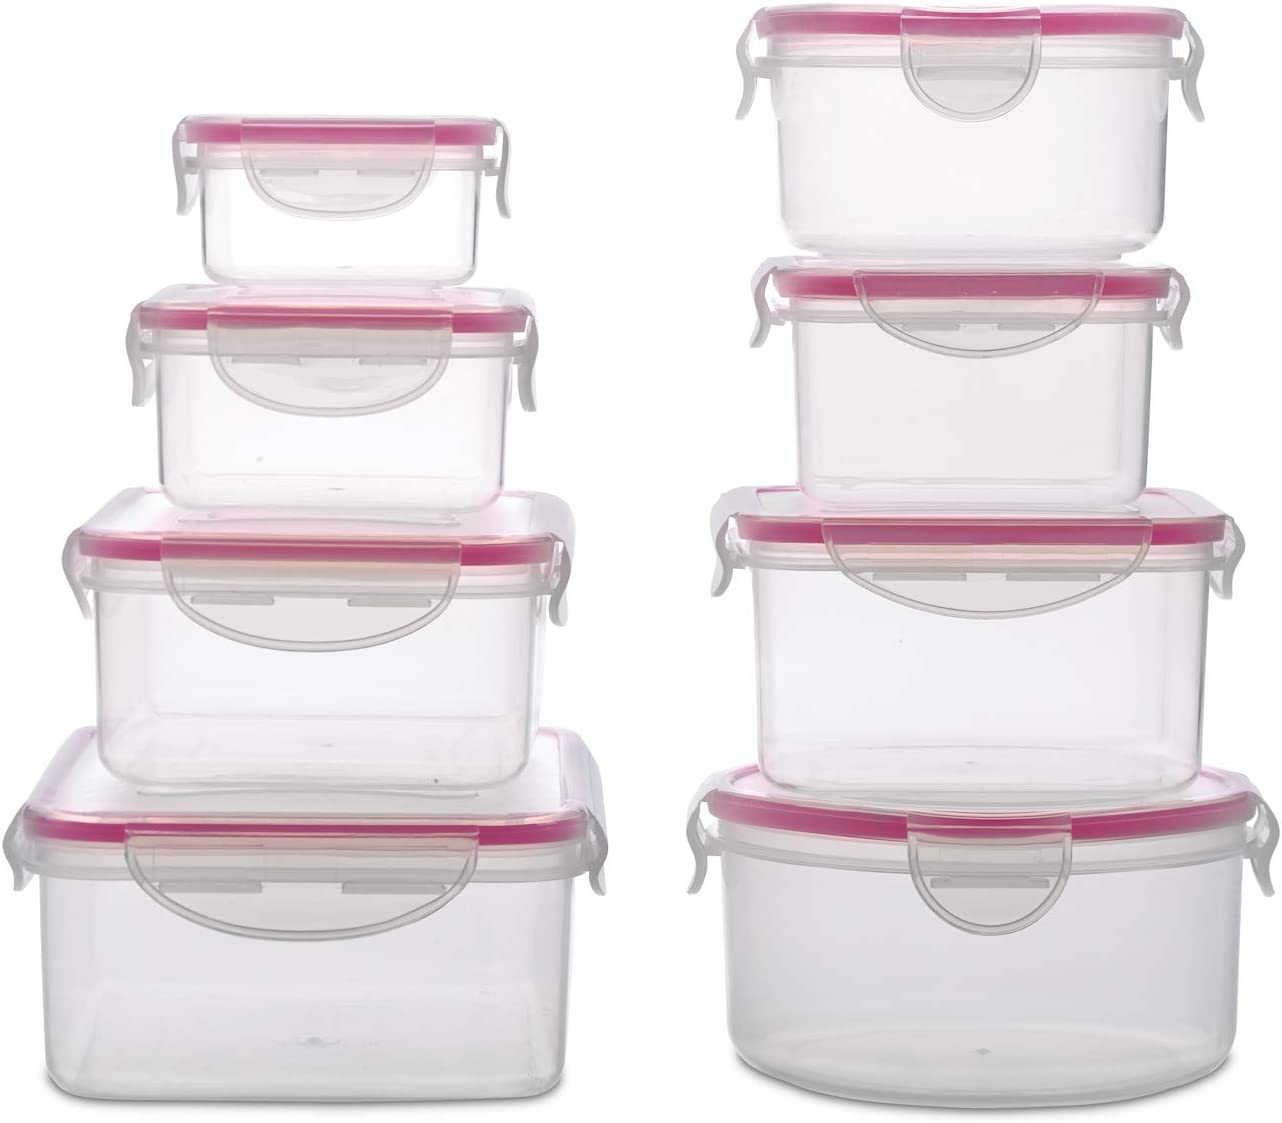 WonderVeg Plastic Food Containers with Lids - 16 Piece, BPA Free, Locking Lids, Dishwasher Safe Freezer Safe, Airtight - Ideal for Home, Kitchen, Storage & Organization